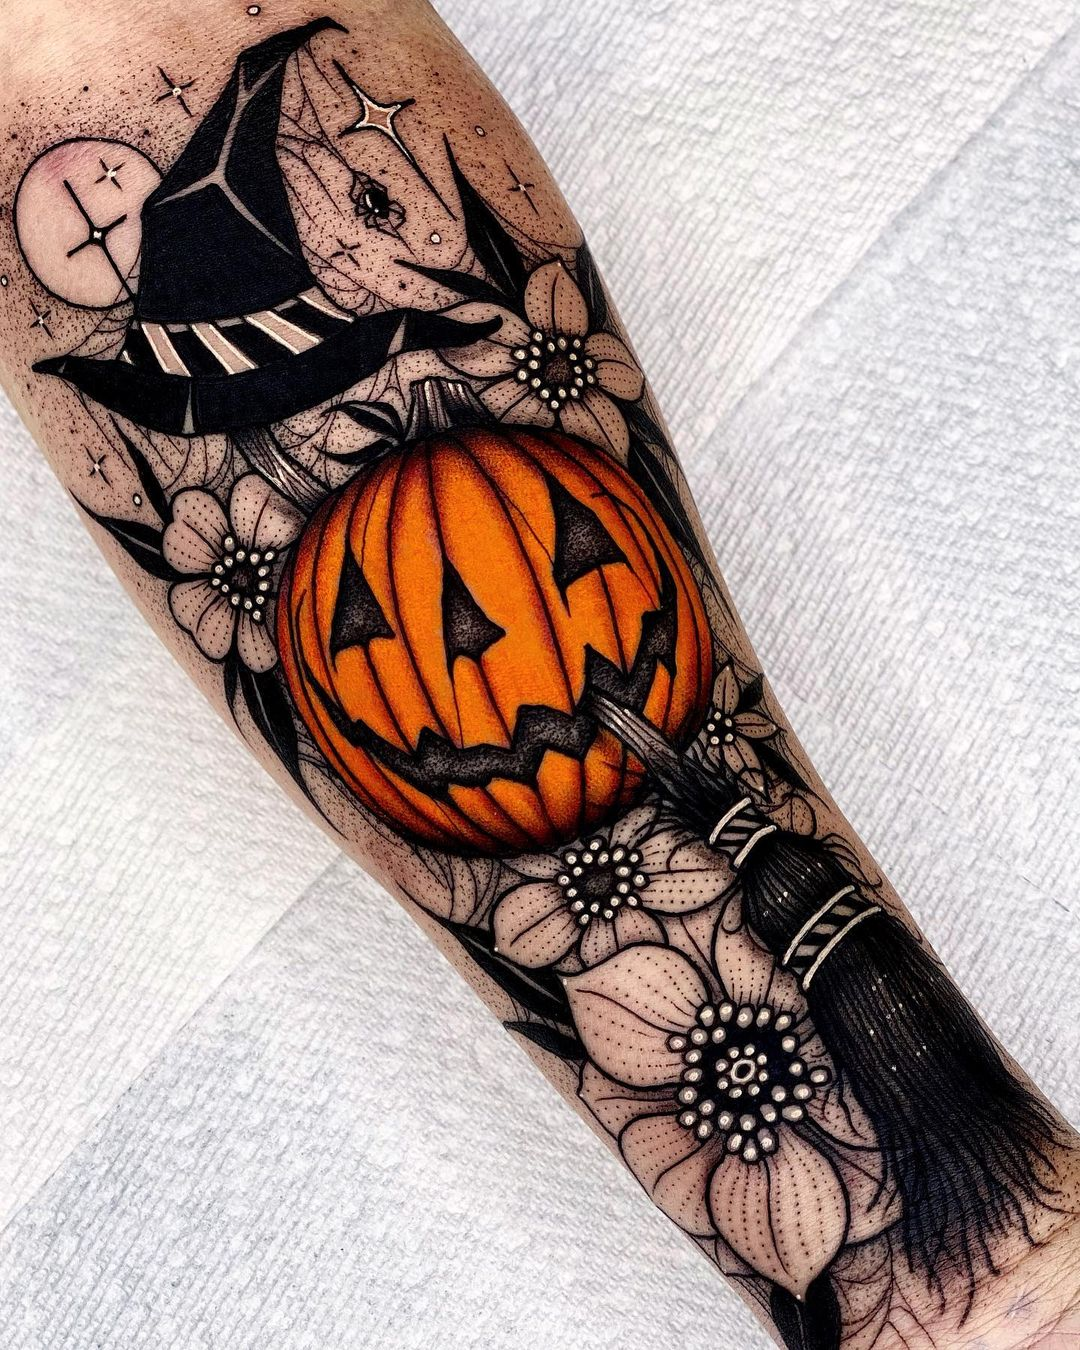 A beautiful sleeve with elements of a classic style for Halloween Pumpkins and other attributes of the holiday of all saints